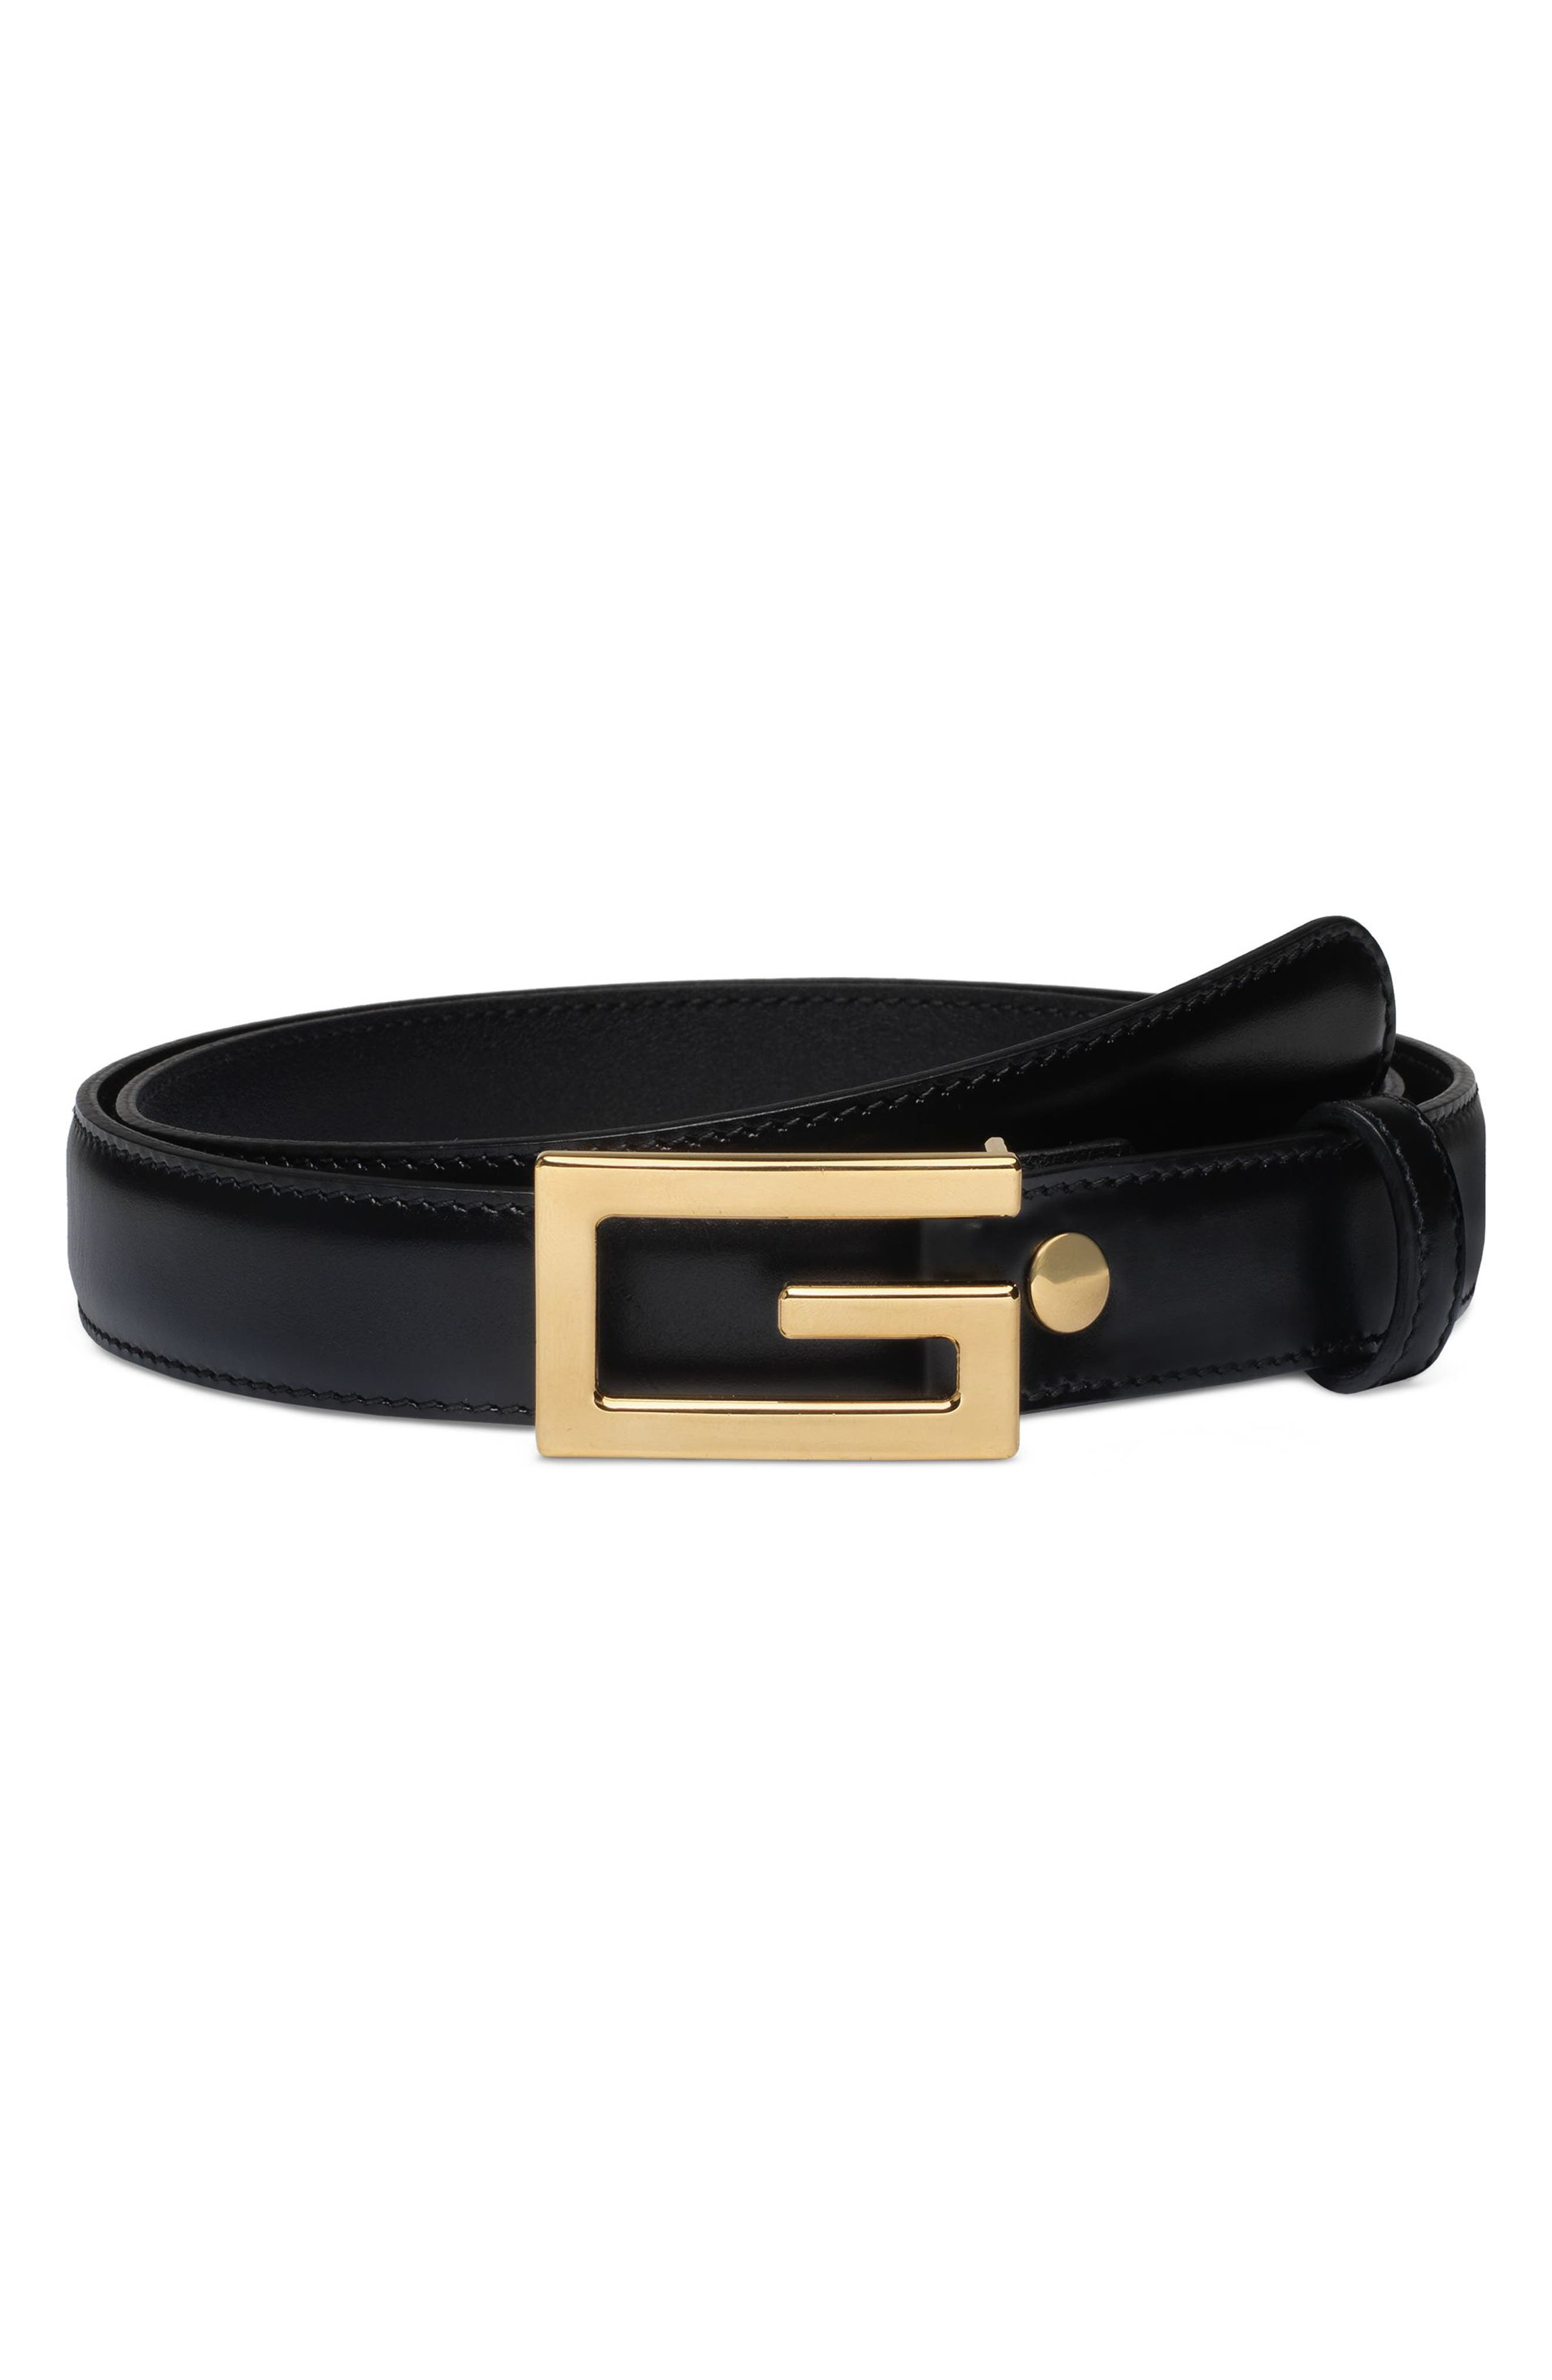 Lisse Calfskin Leather Belt,                             Main thumbnail 1, color,                             BLACK